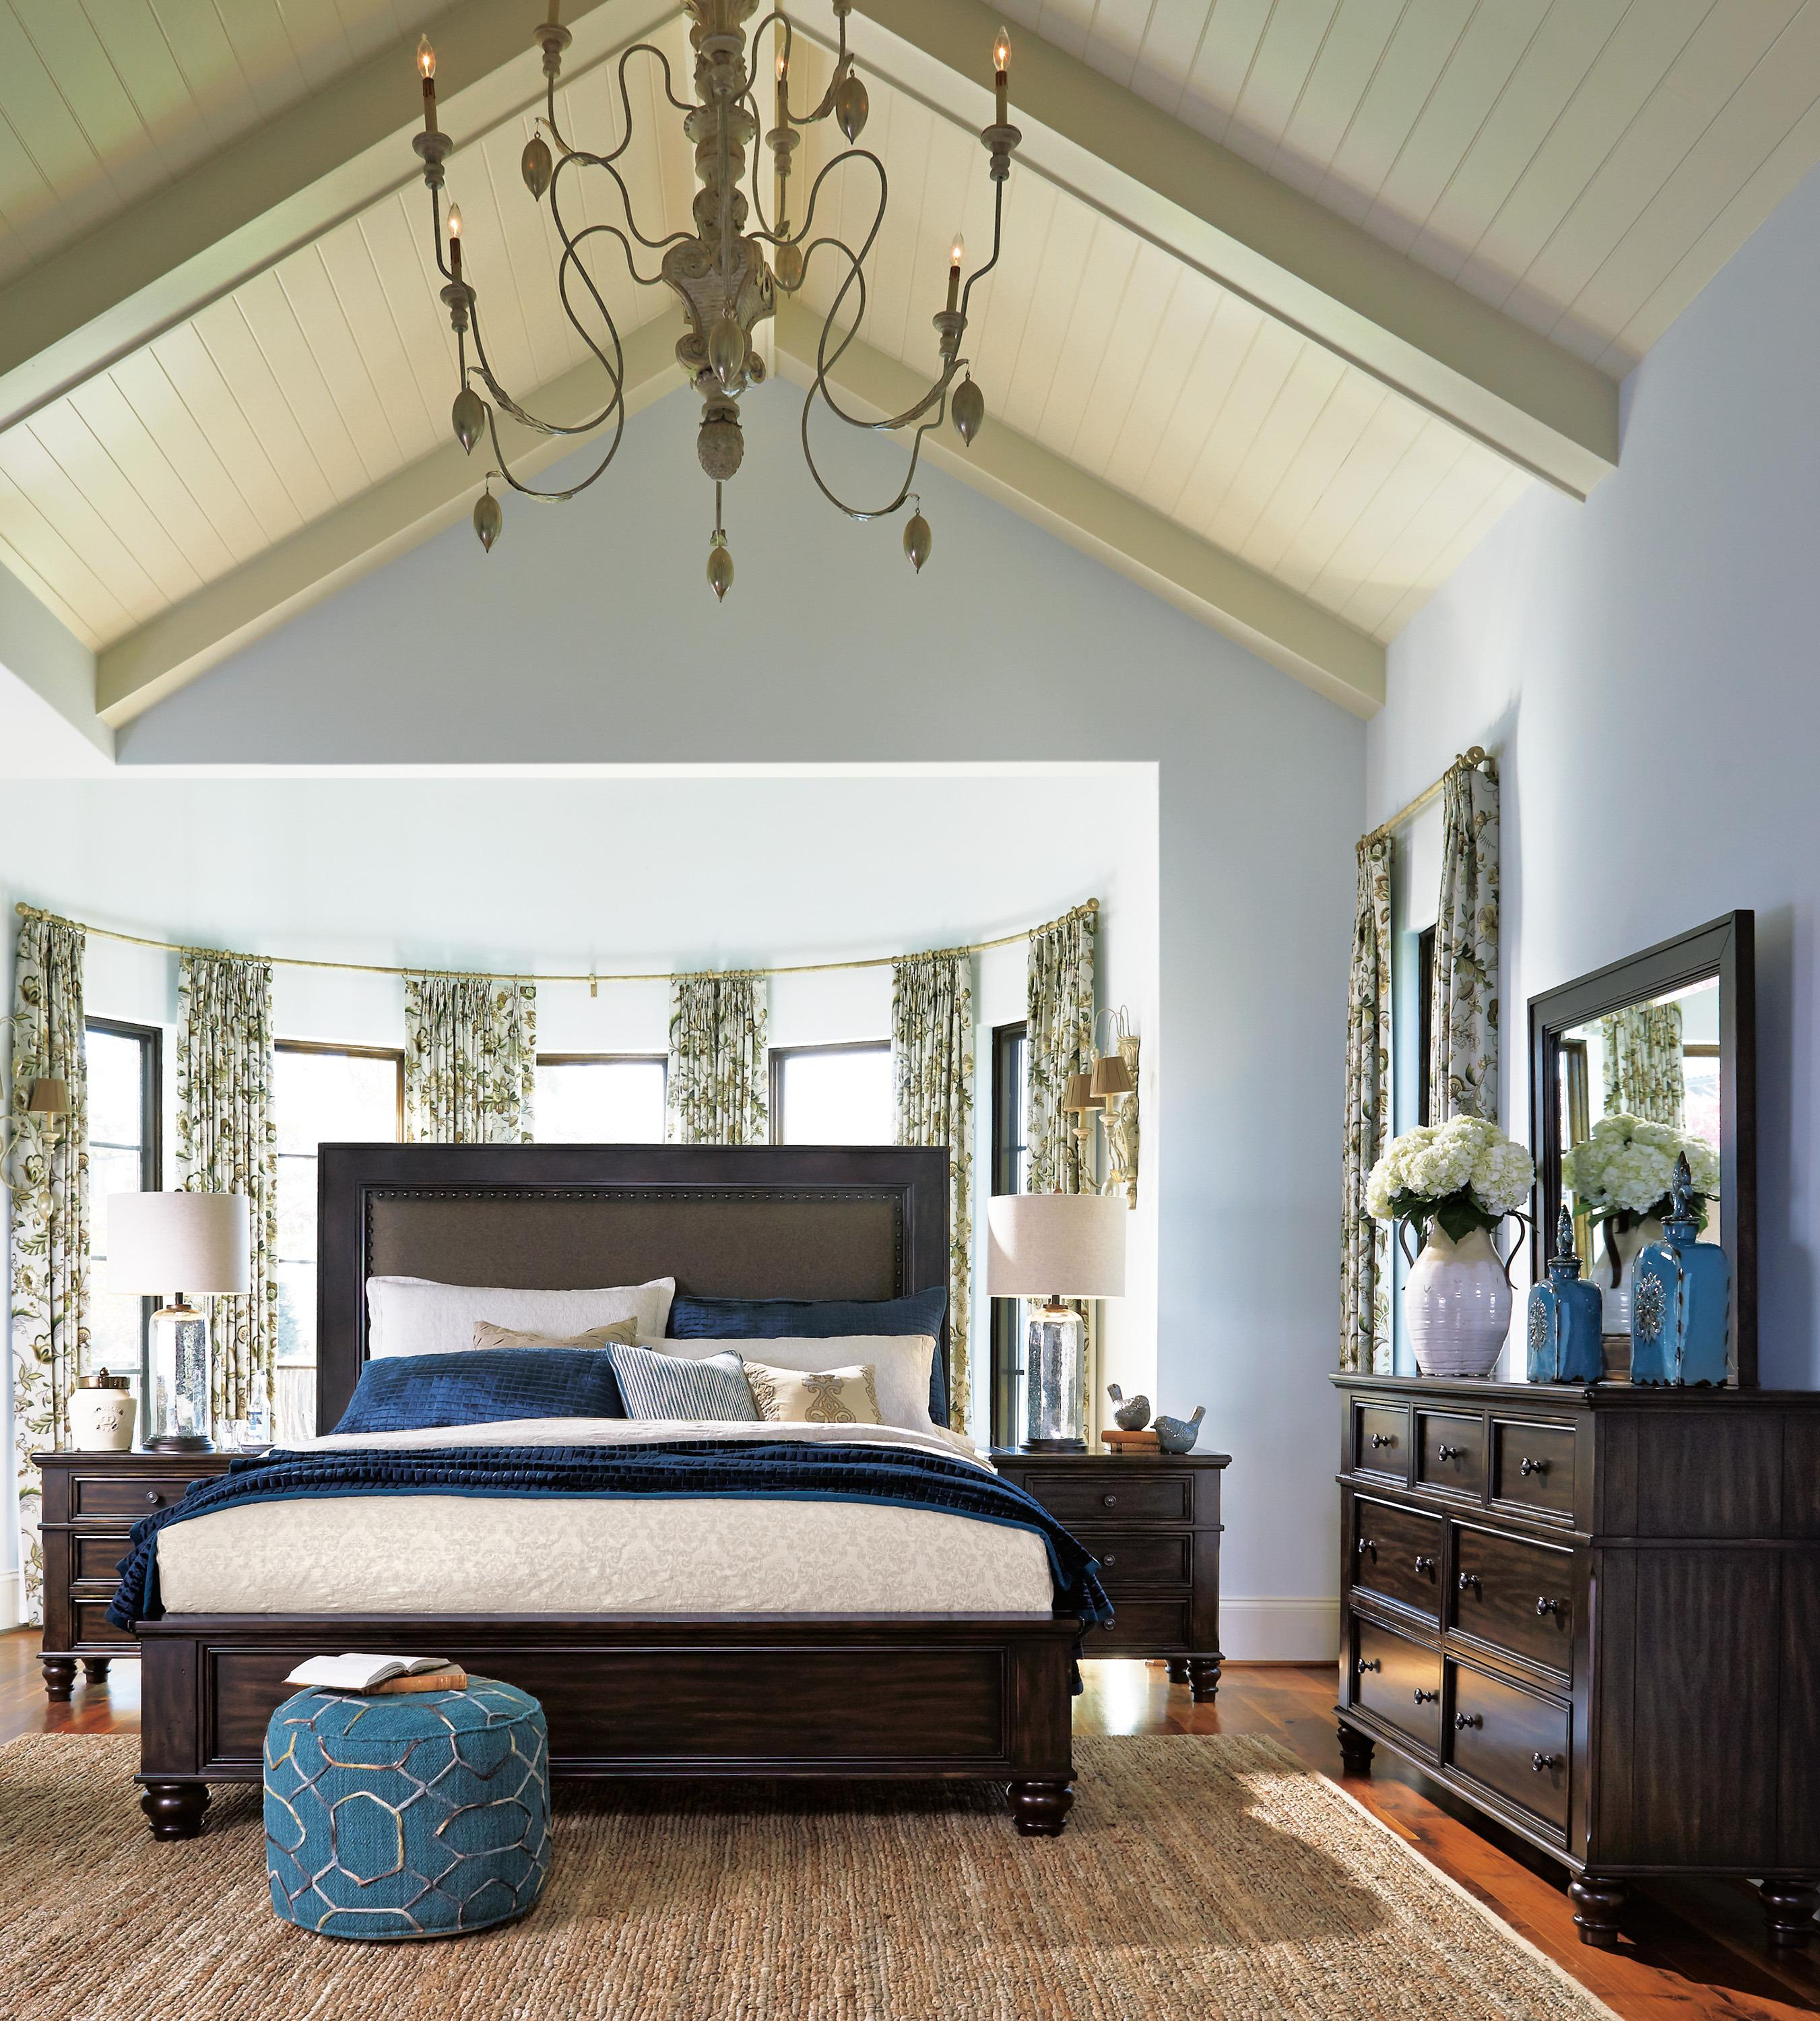 Roddinton queen panel bed frames your sleeping haven like a work of art. Soaring headboard is comfortably cushioned, upholstered in a textured twill and serenaded with classic nailhead trim. Low paneled footboard makes it easy to sit at the foot of the bed and dress for the day.